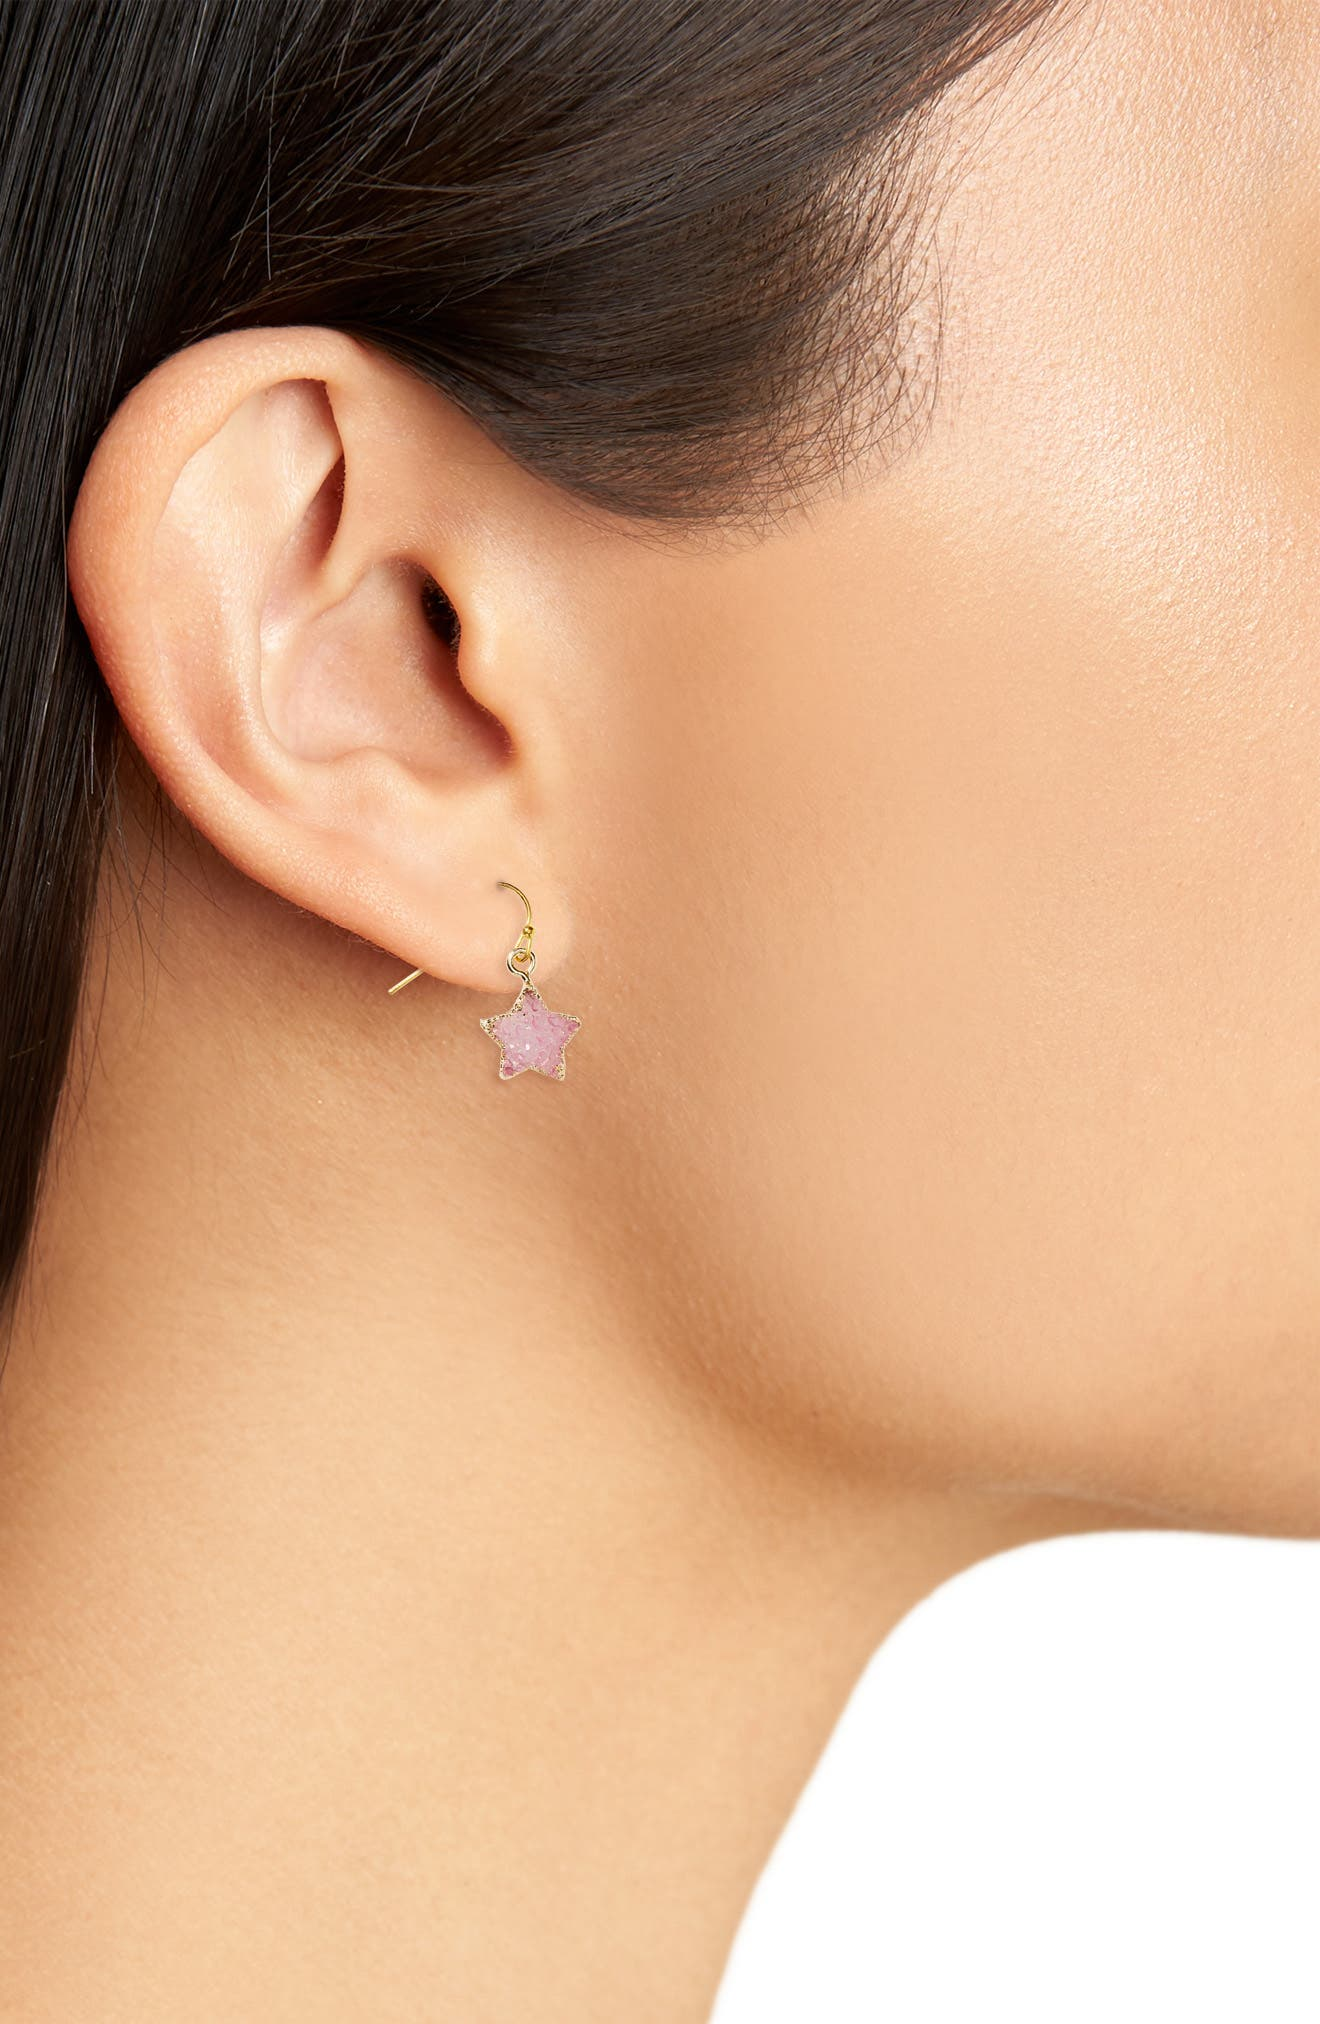 Moon & Star Drusy Stone Earrings,                             Alternate thumbnail 2, color,                             Pink